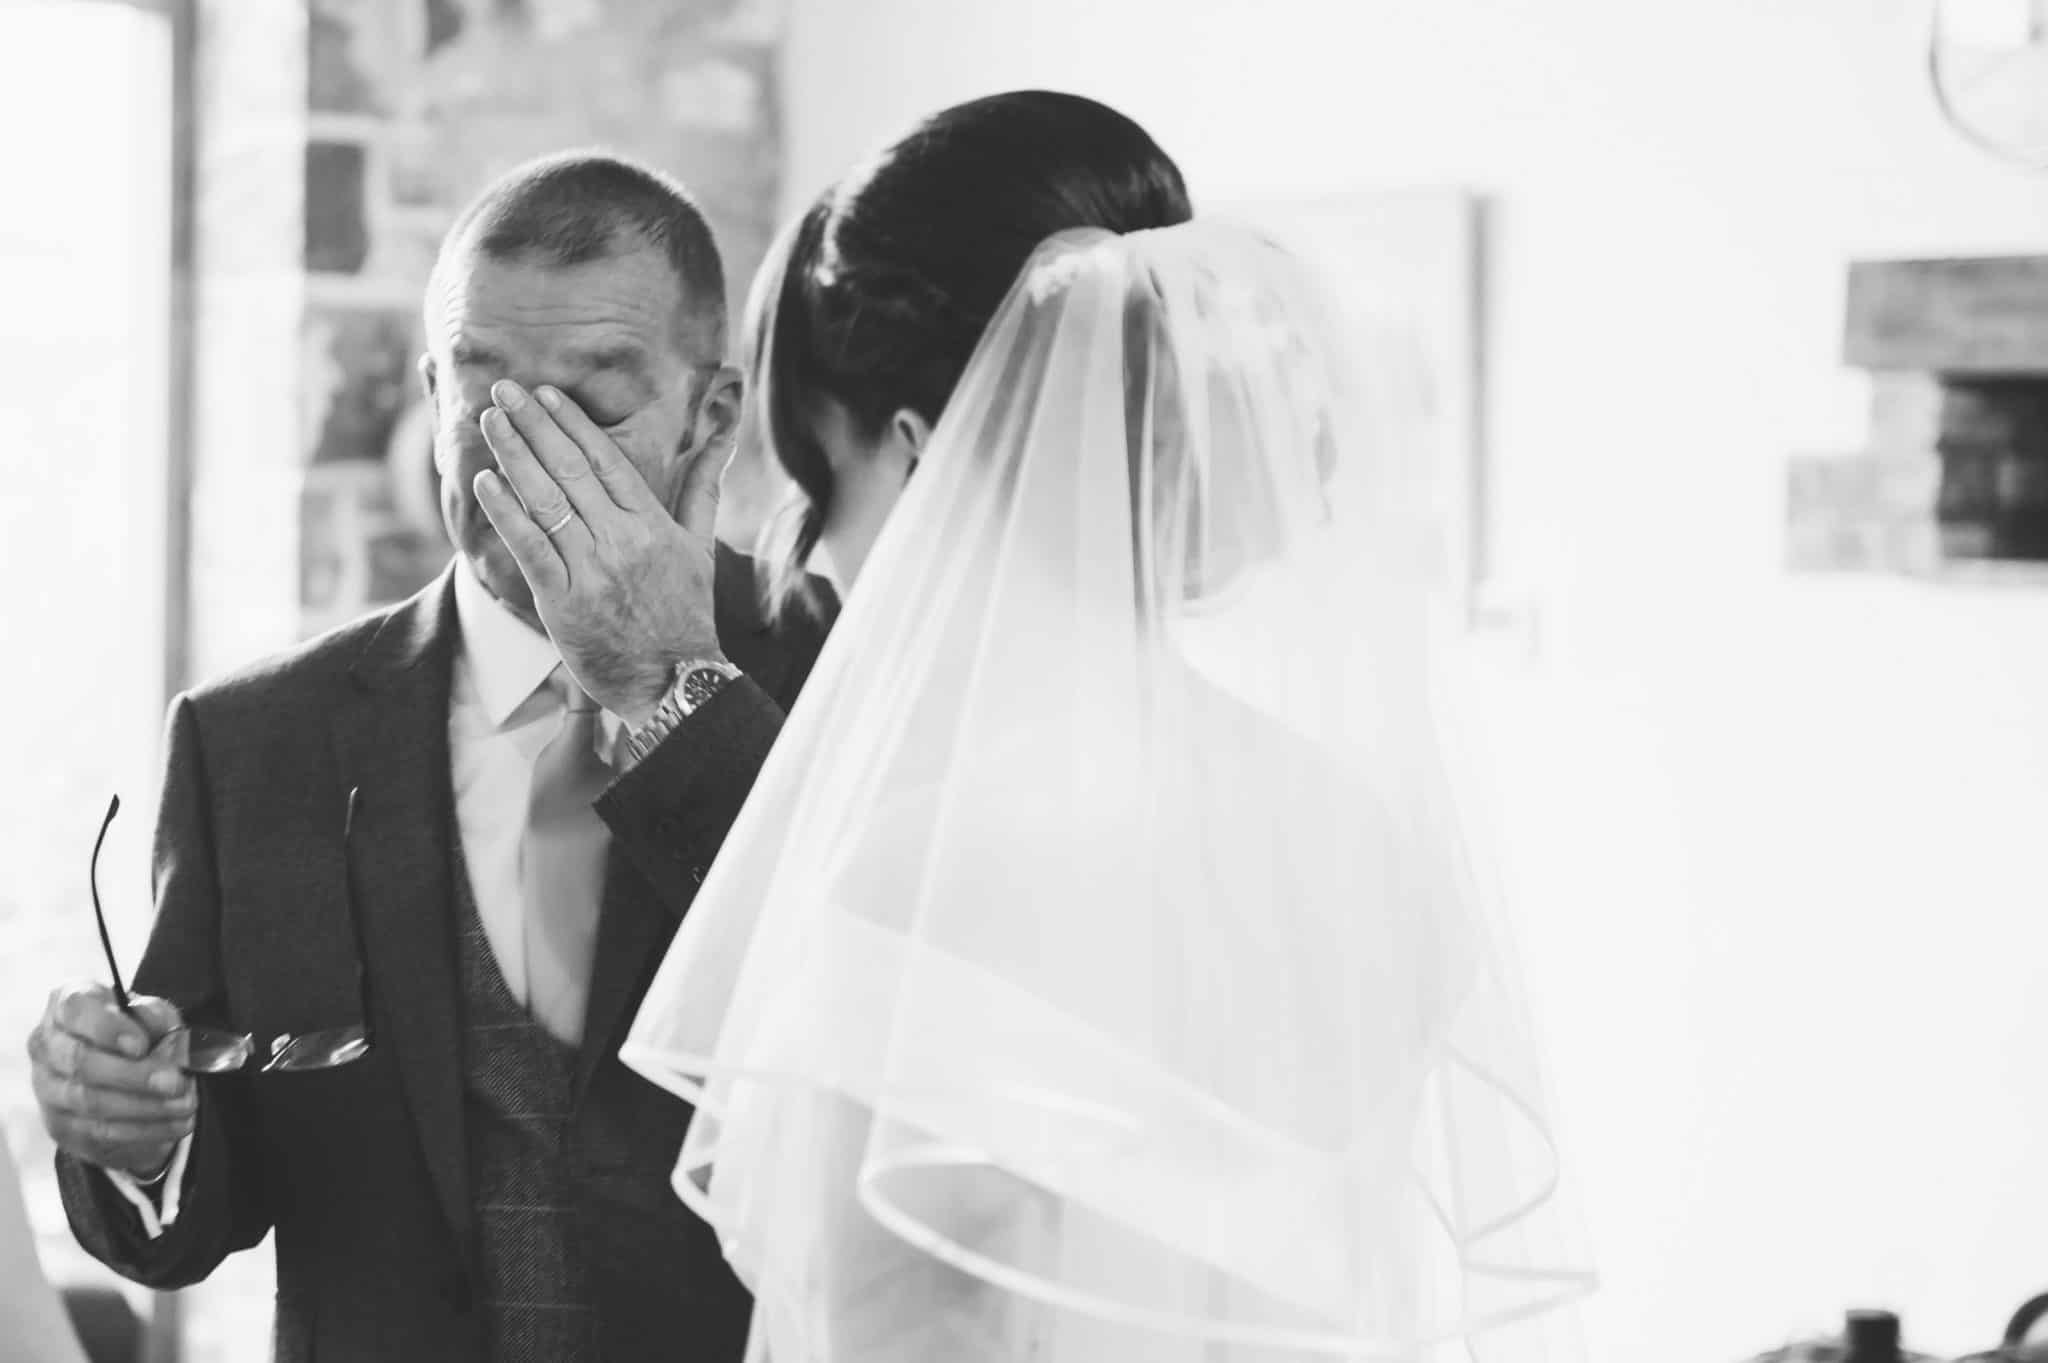 Bride's father wiping away tears